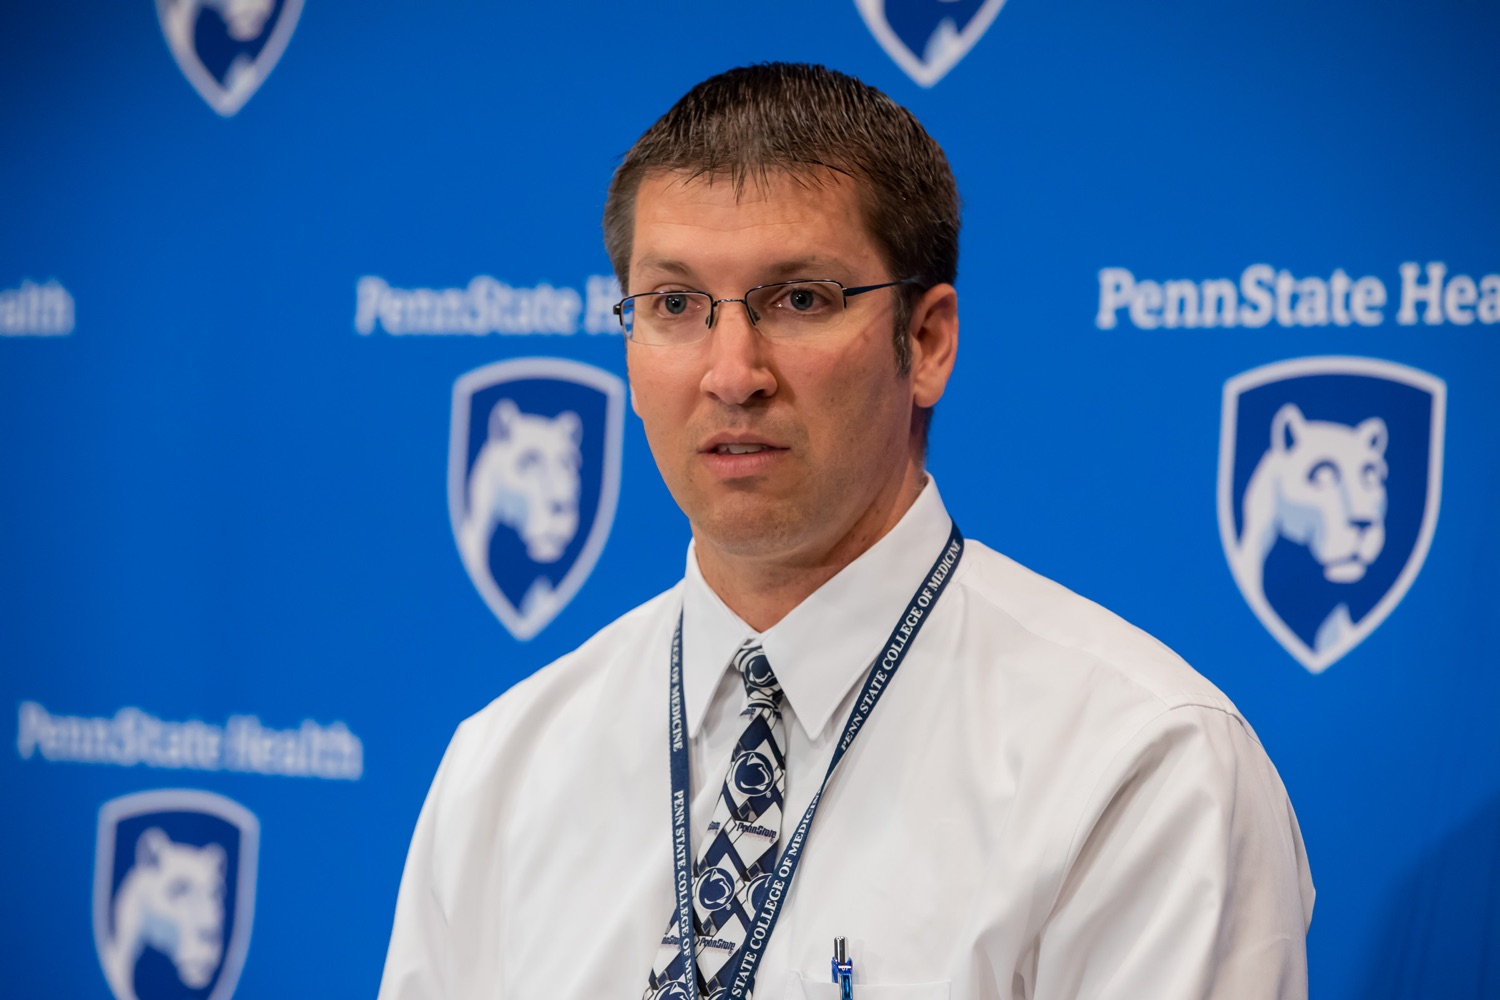 "<a href=""https://filesource.wostreaming.net/commonwealthofpa/photo/17471_DOH_FluSeason_AG_13.jpg"" target=""_blank"">⇣ Download Photo<br></a>Harrisburg, PA.  Dr. Todd Felix, family medicine physician at Penn State Health, speaks at today's event at the Penn State Health Milton S. Hershey Medical Center. The Department of Health reminded residents that it is time to get their flu vaccine, as flu season officially starts this month and runs until May. Residents are also encouraged to get their flu vaccine before the end of October.  October 8, 2019."